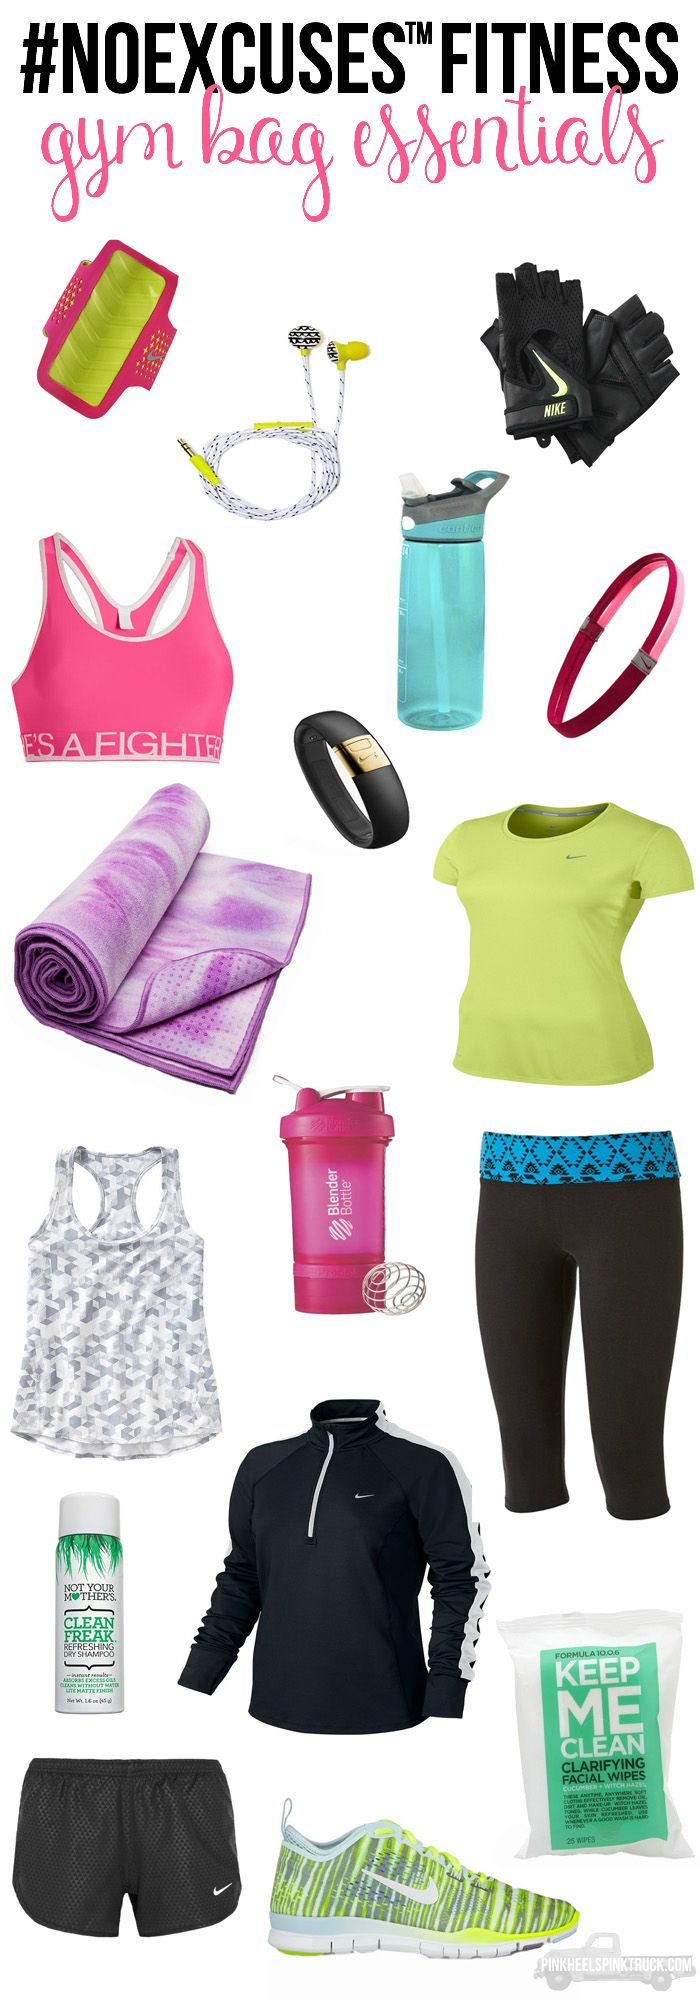 Here are some great items to make sure you have in your gym bag! Never leave home without them! #NOEXCUSES™ Fitness Gym Bag Essentials